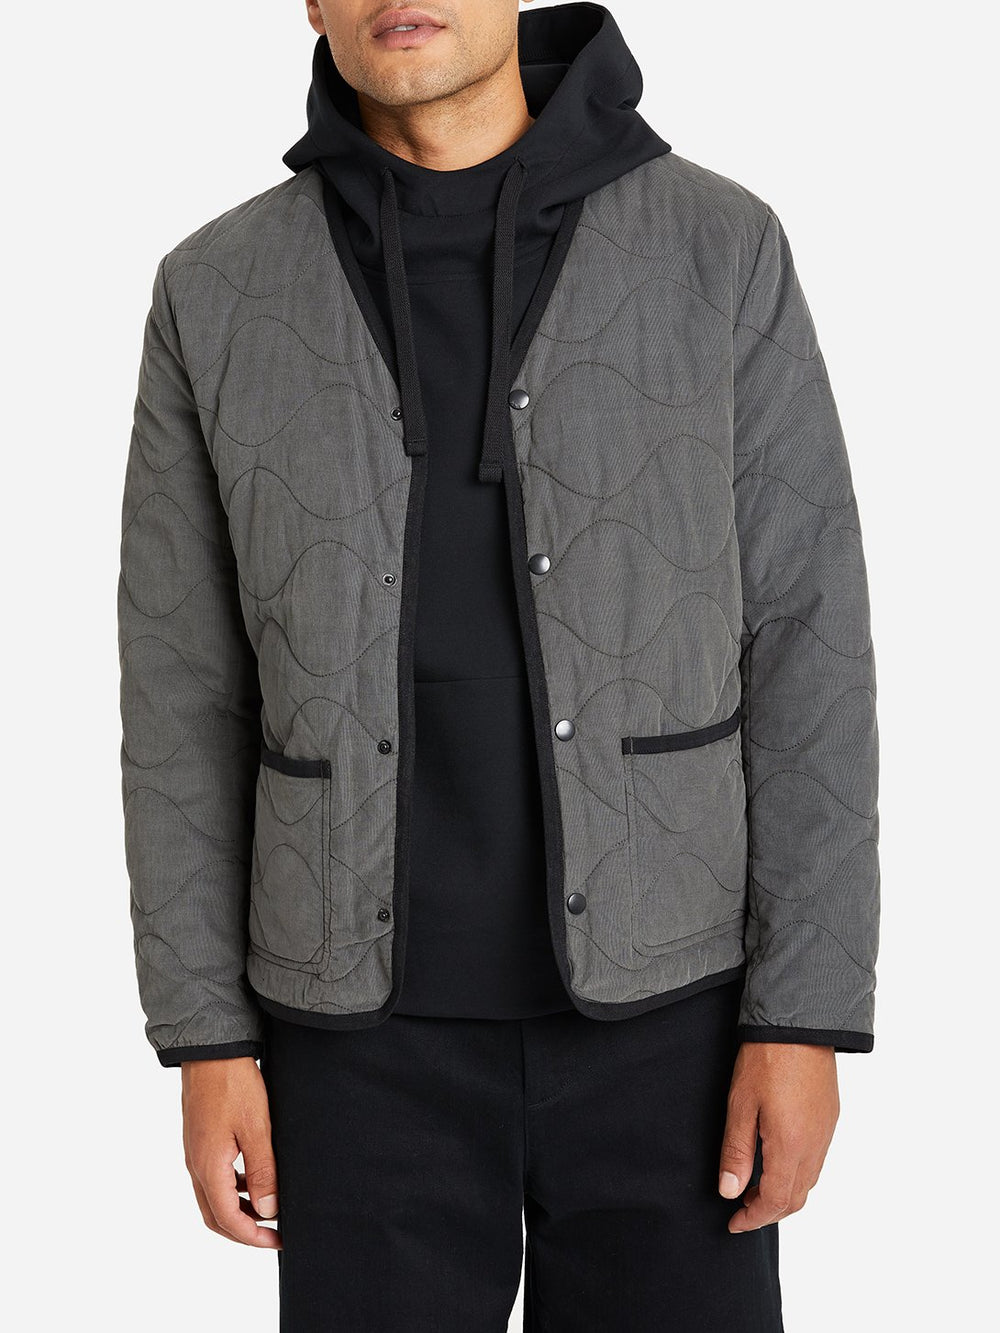 DARK SHADOW GREY jacket for men crescent jacket ONS clothing